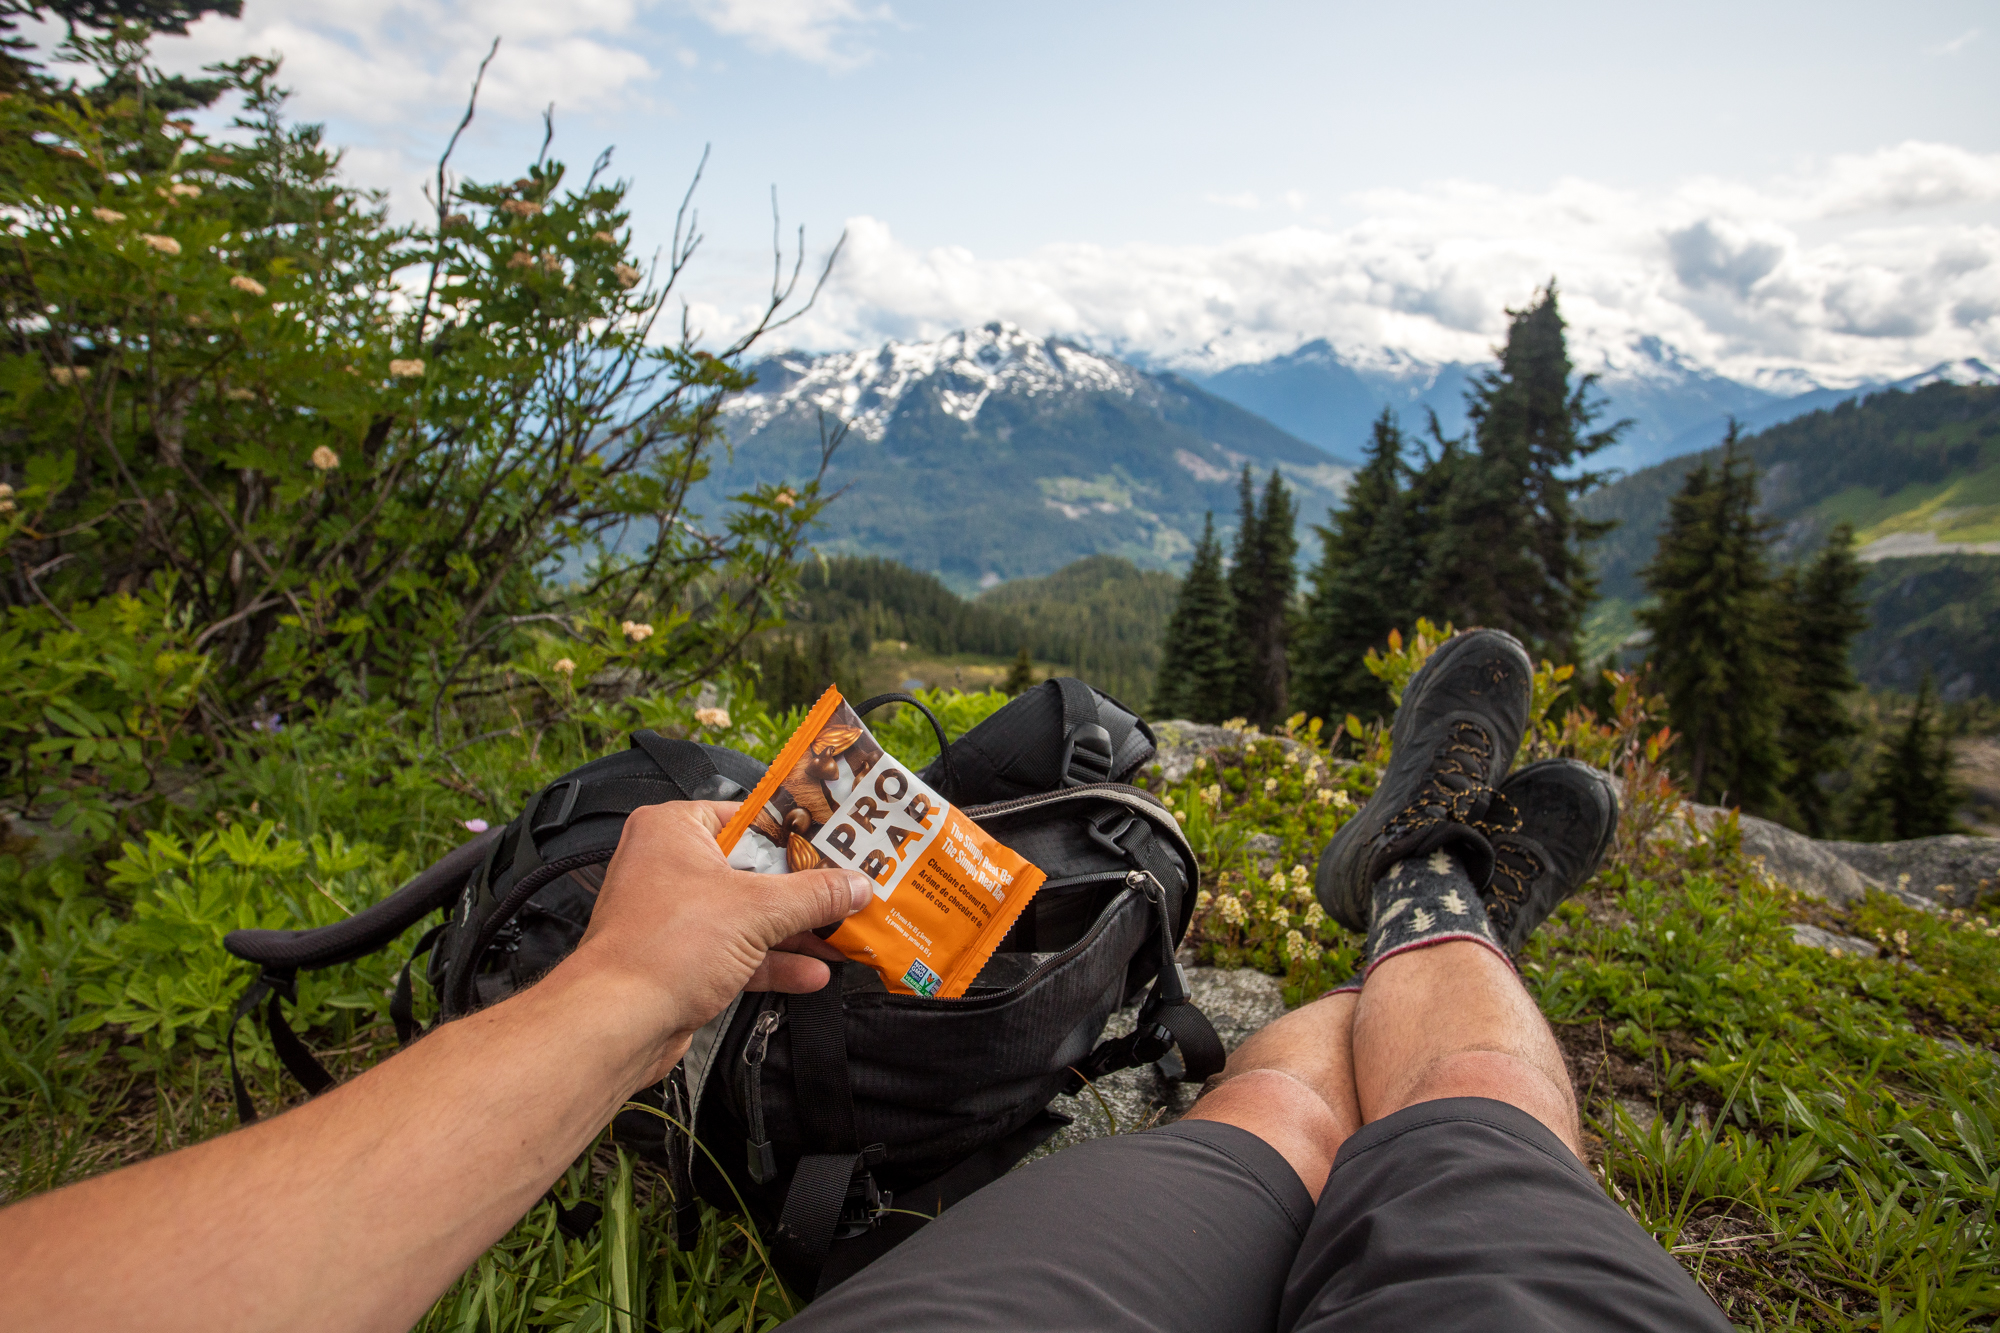 Taking a break, enjoying a ProBar. A little snack to keep me going.